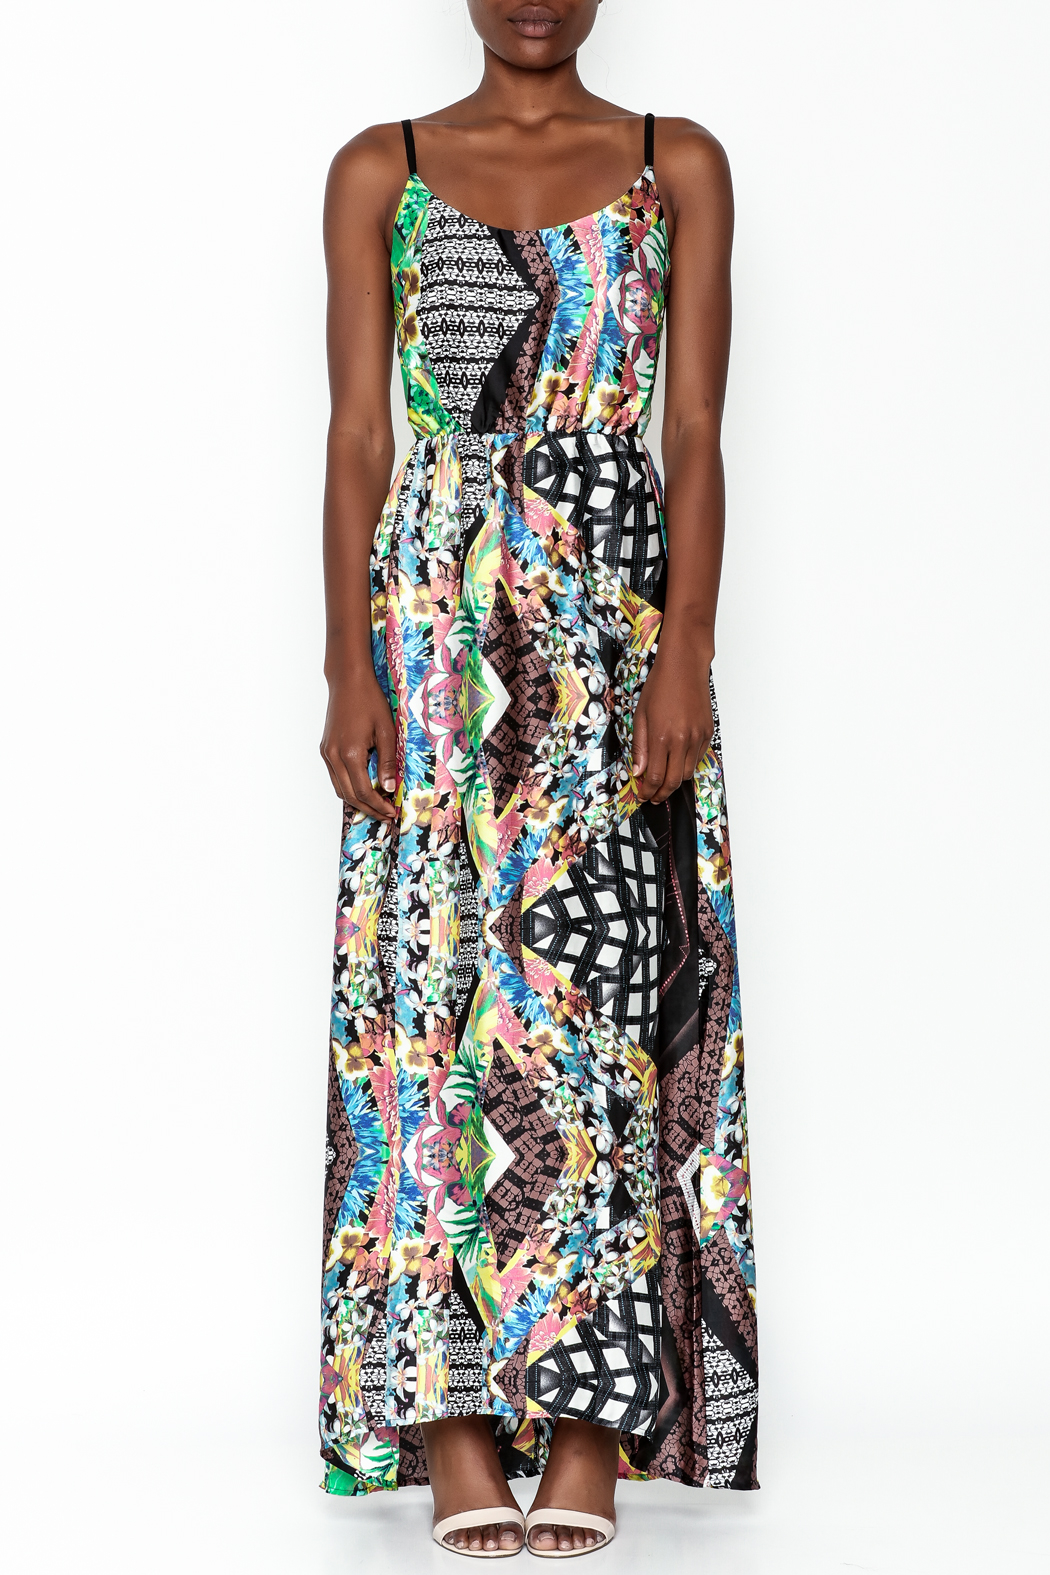 LIFTED Boutique Printed Maxi Dress - Front Full Image